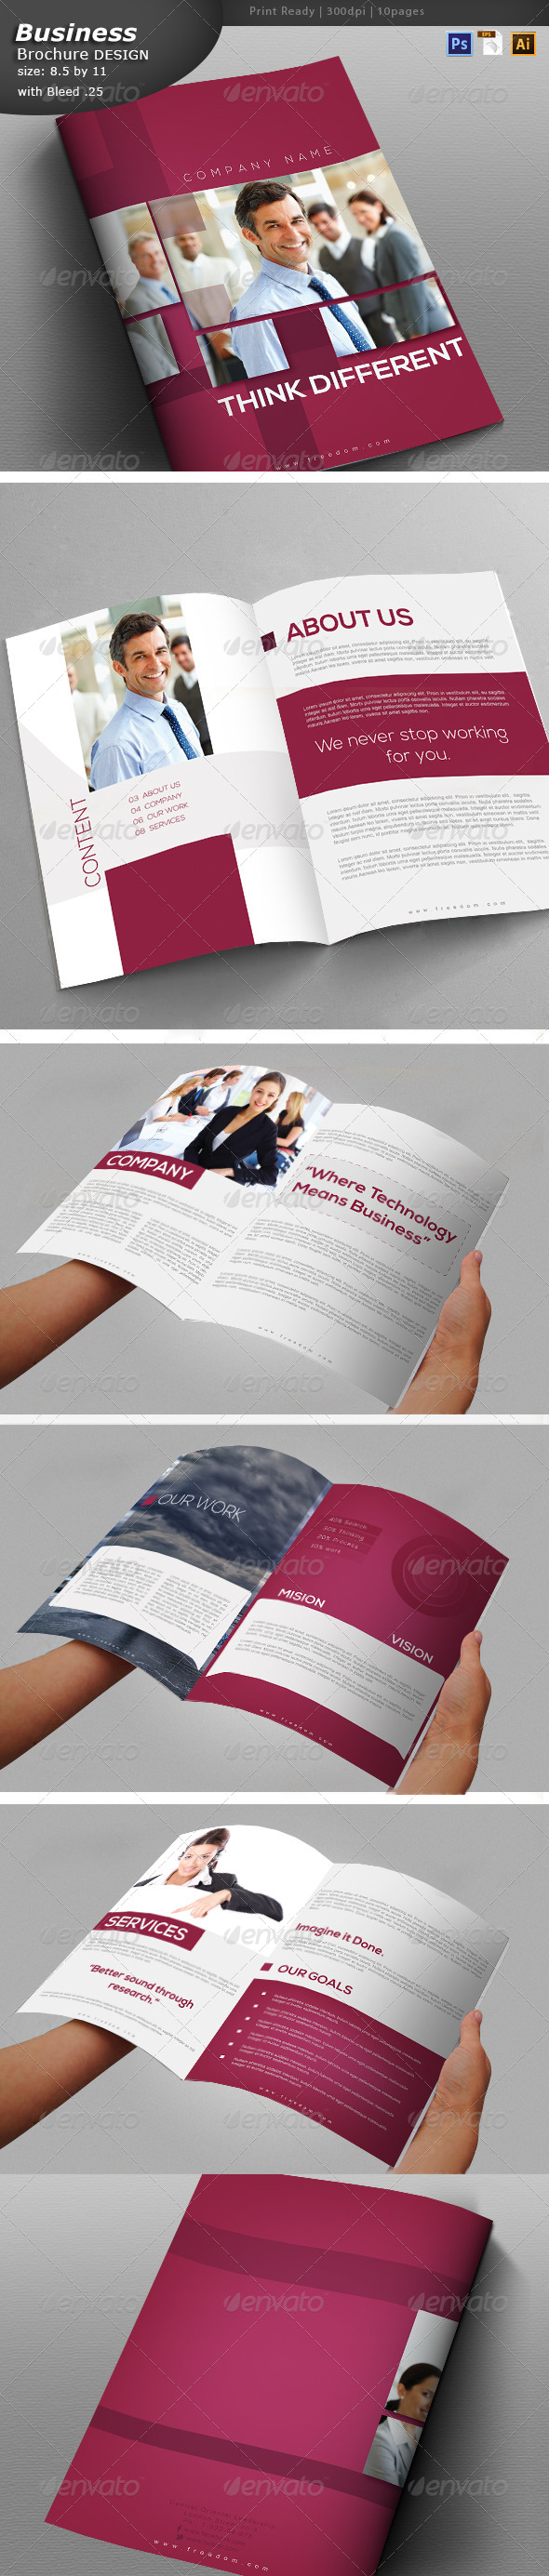 GraphicRiver Services Brochure Design 6237890